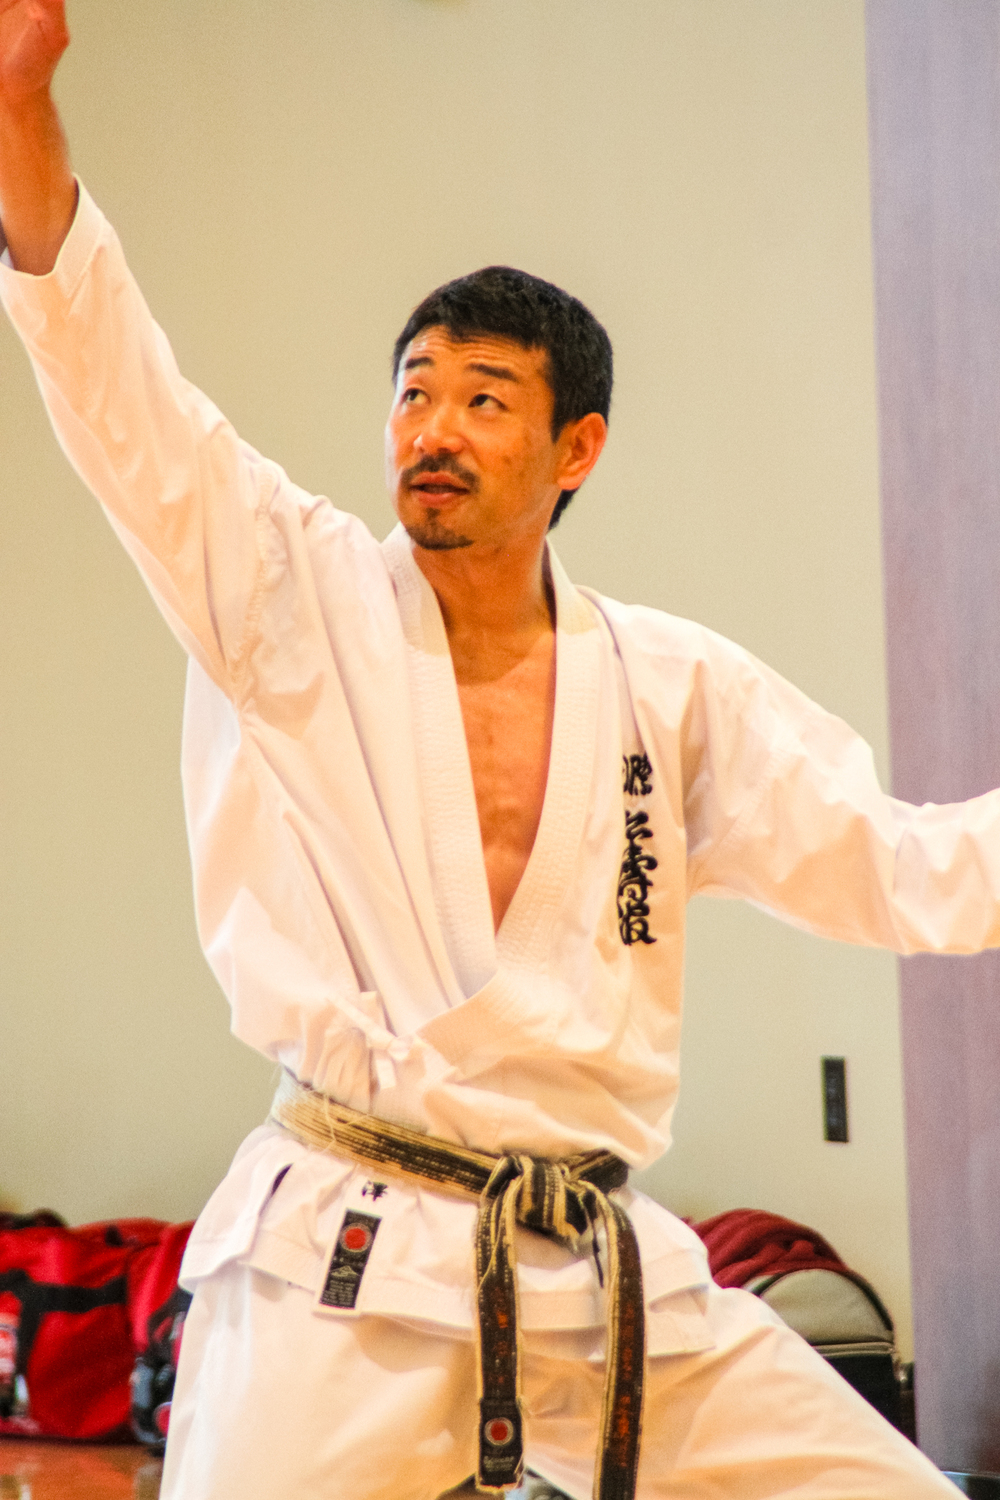 Kancho Nobuaki Kanazawa at the Golden Tiger seminar on 7/2/13.